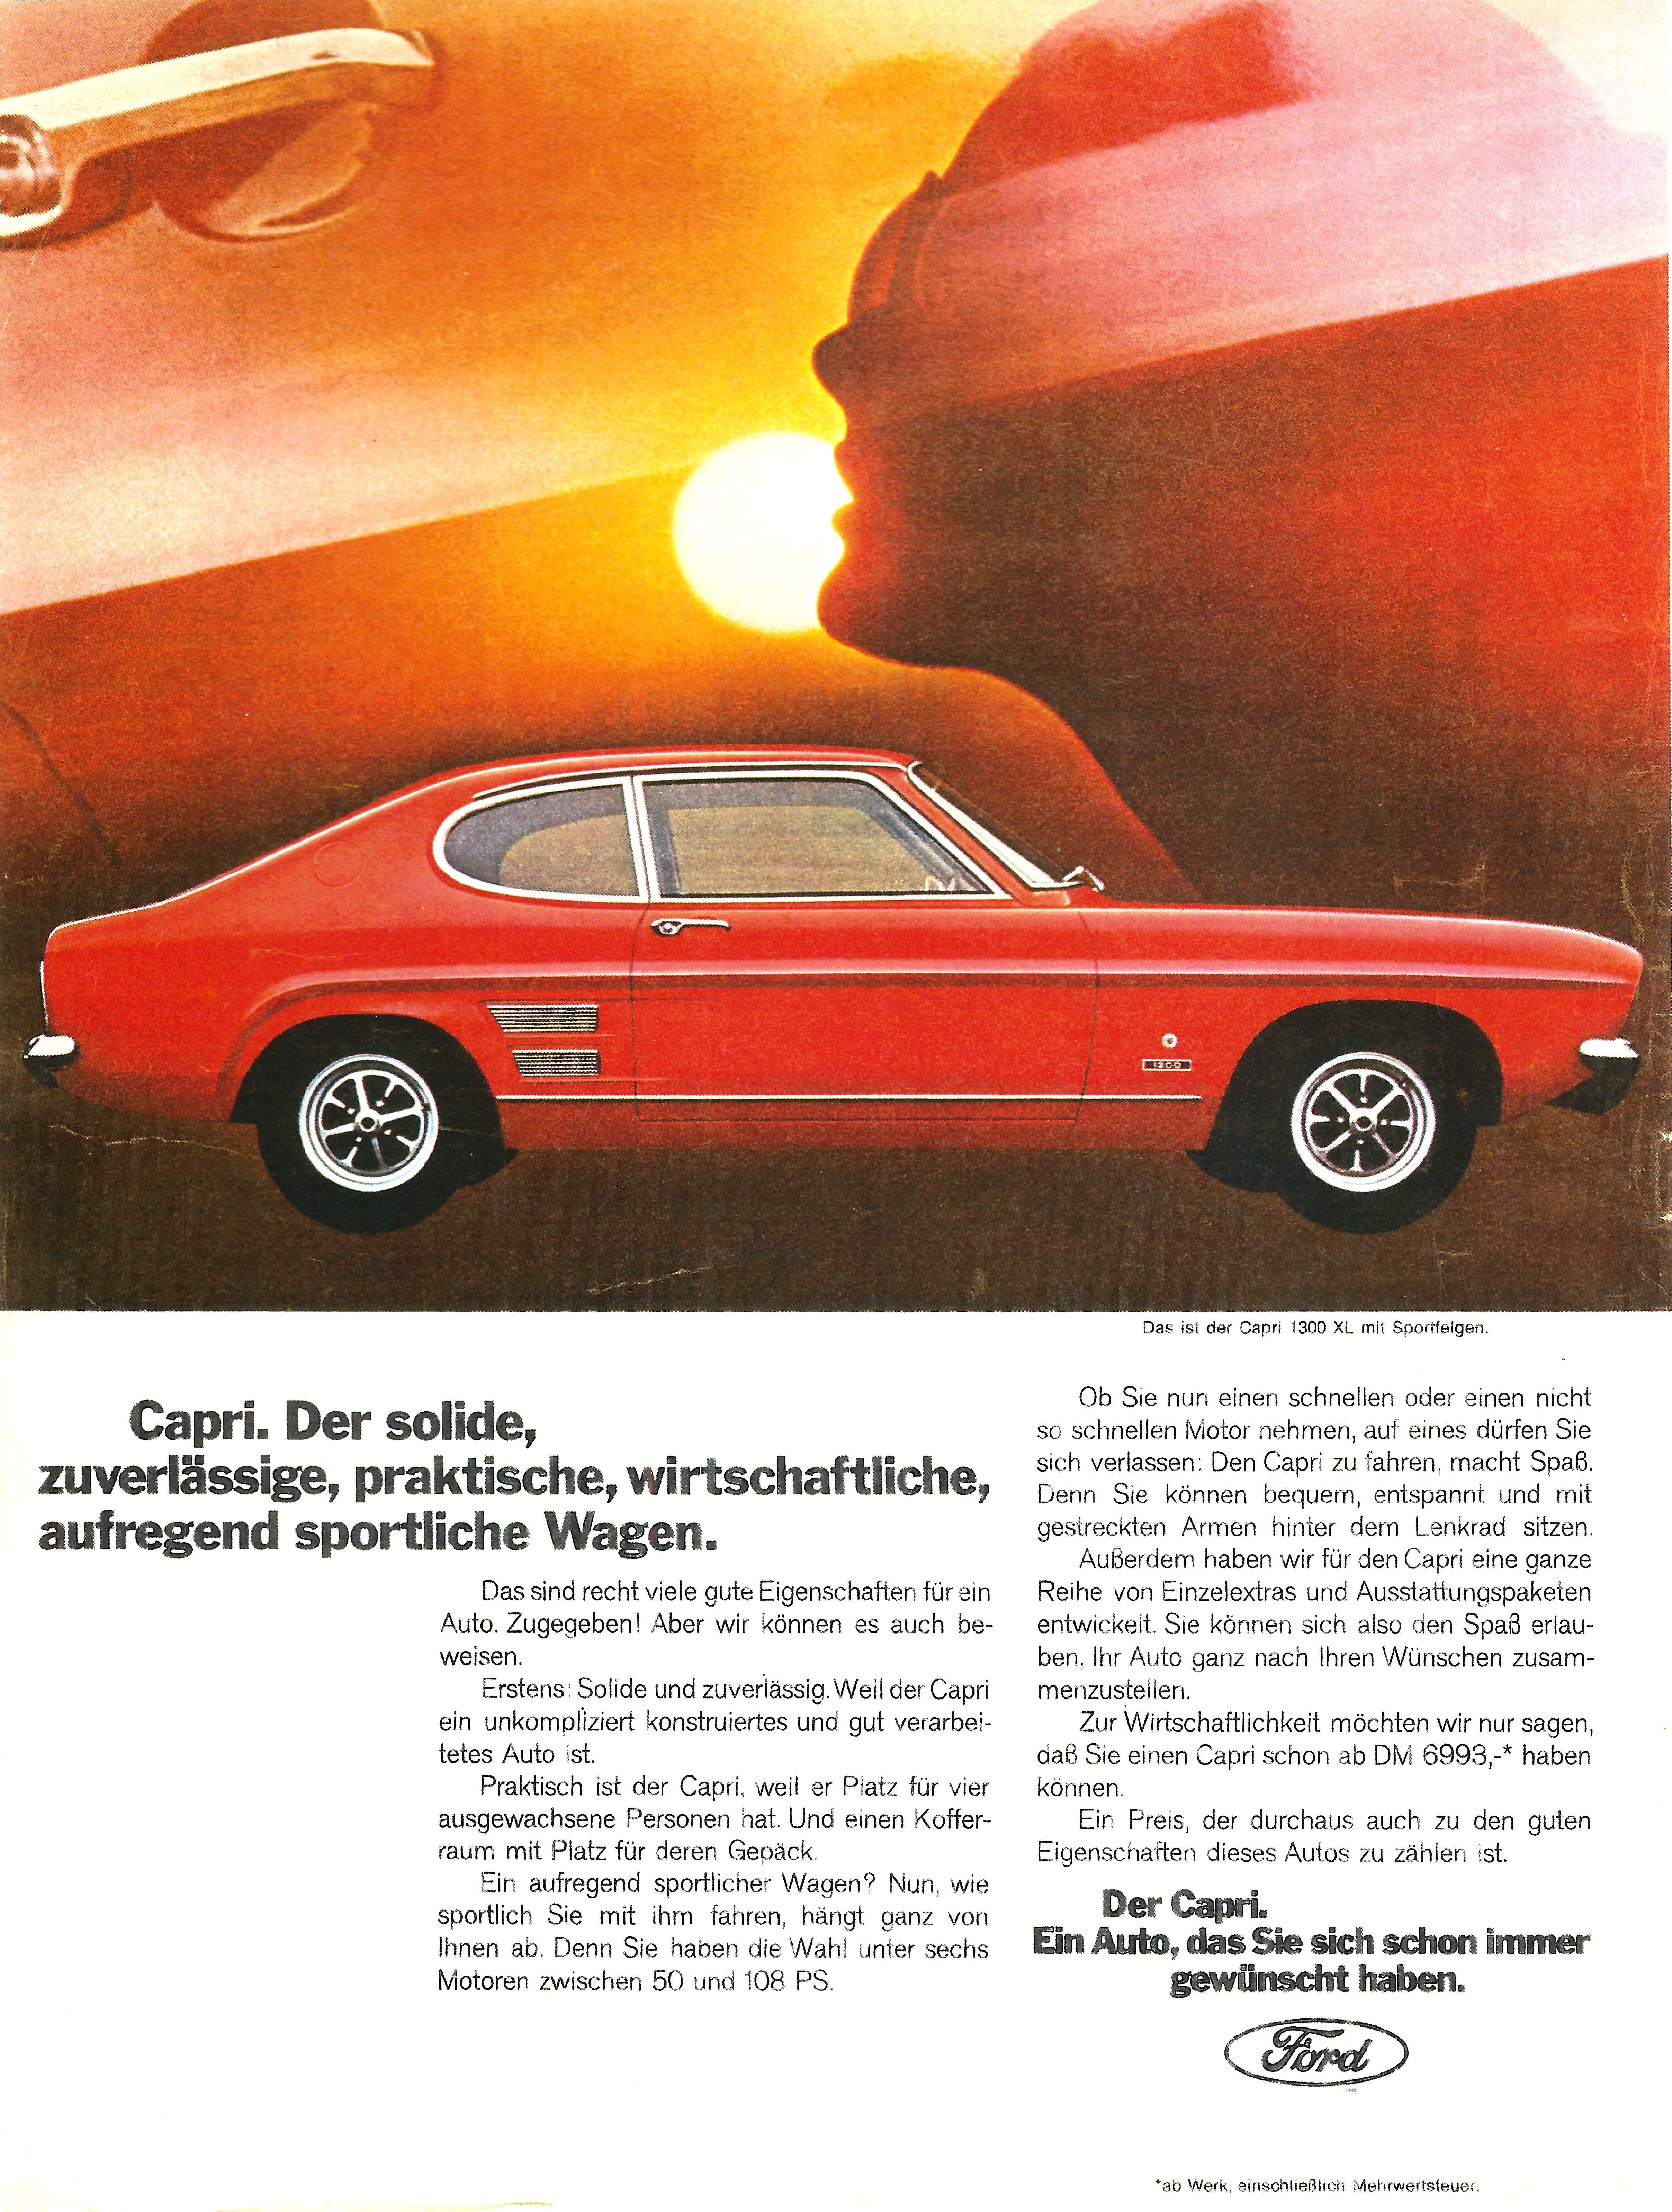 Retro Ford Capri Advertising Garage Poster A4 Size LOOK!